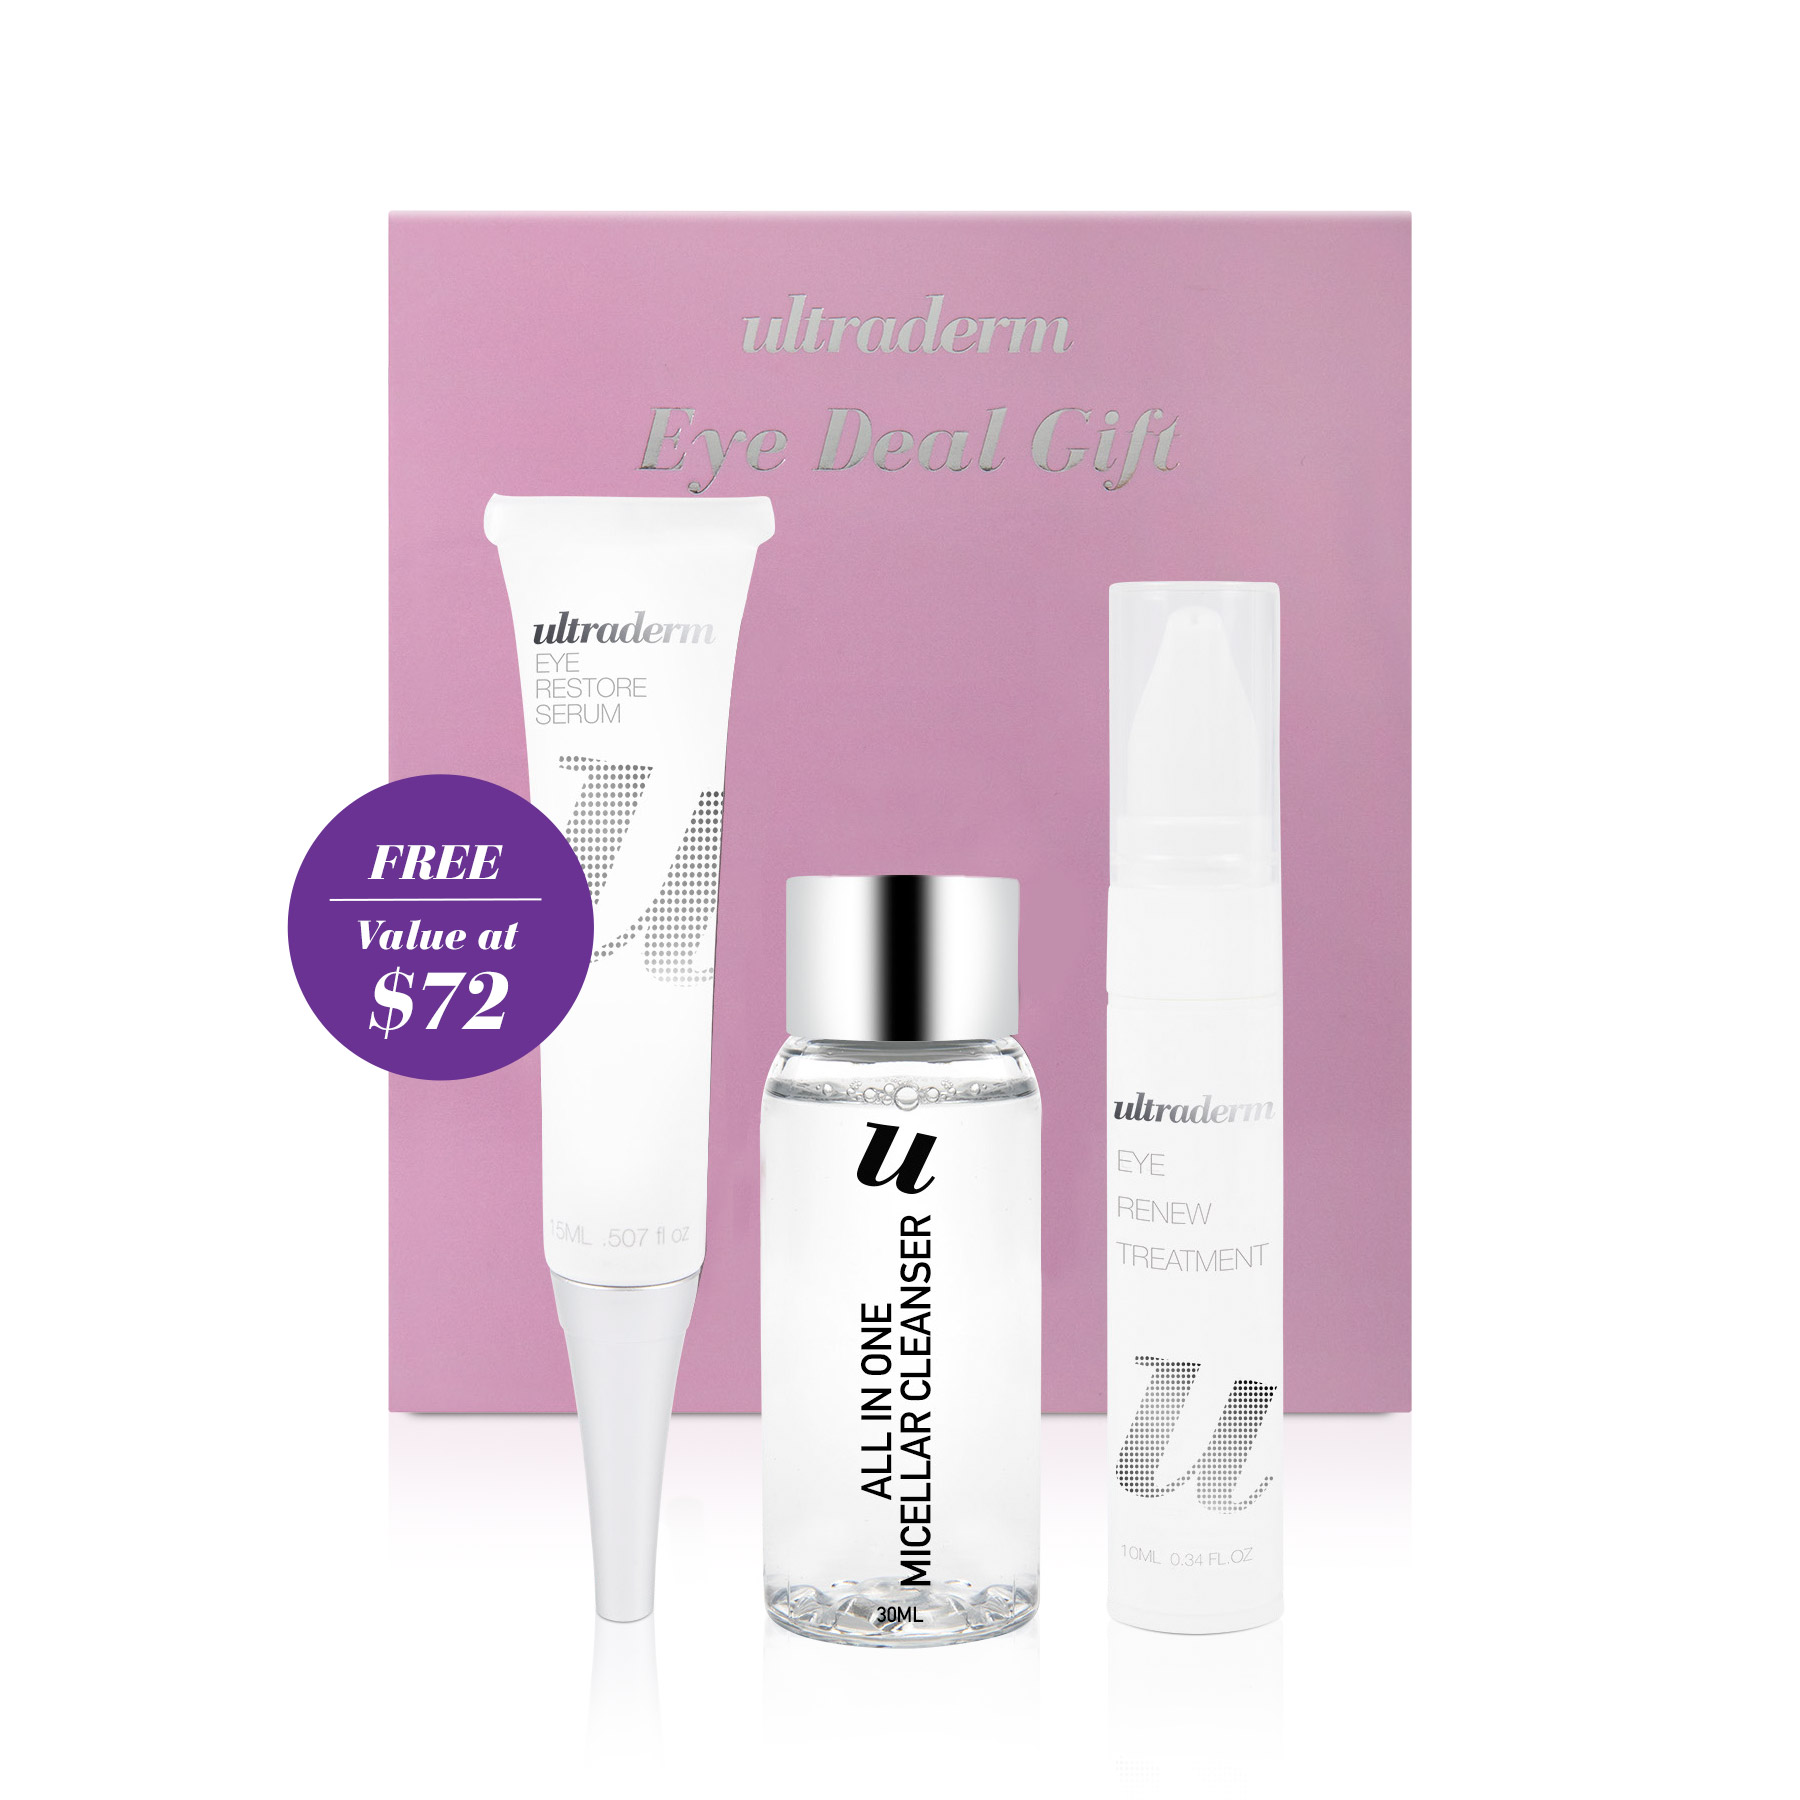 ultraderm-eye-deal-gift